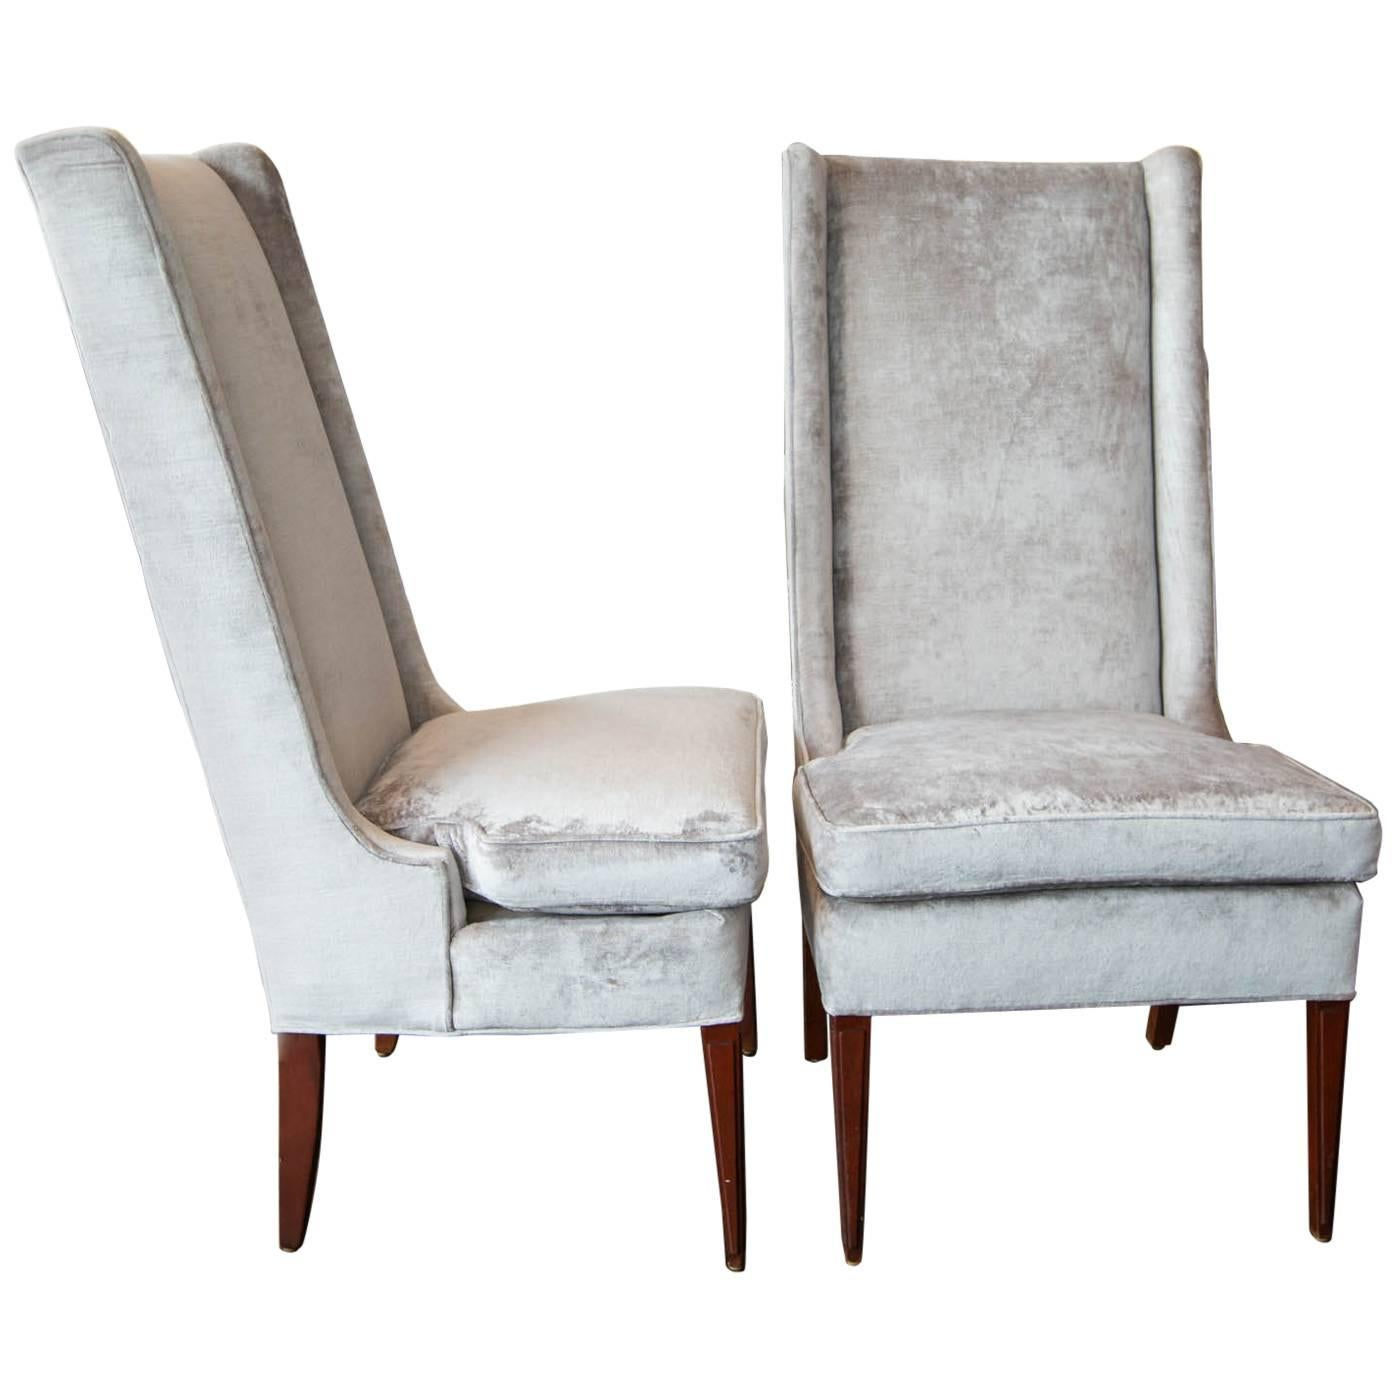 High Backed Wing Chairs In Grey Velvet